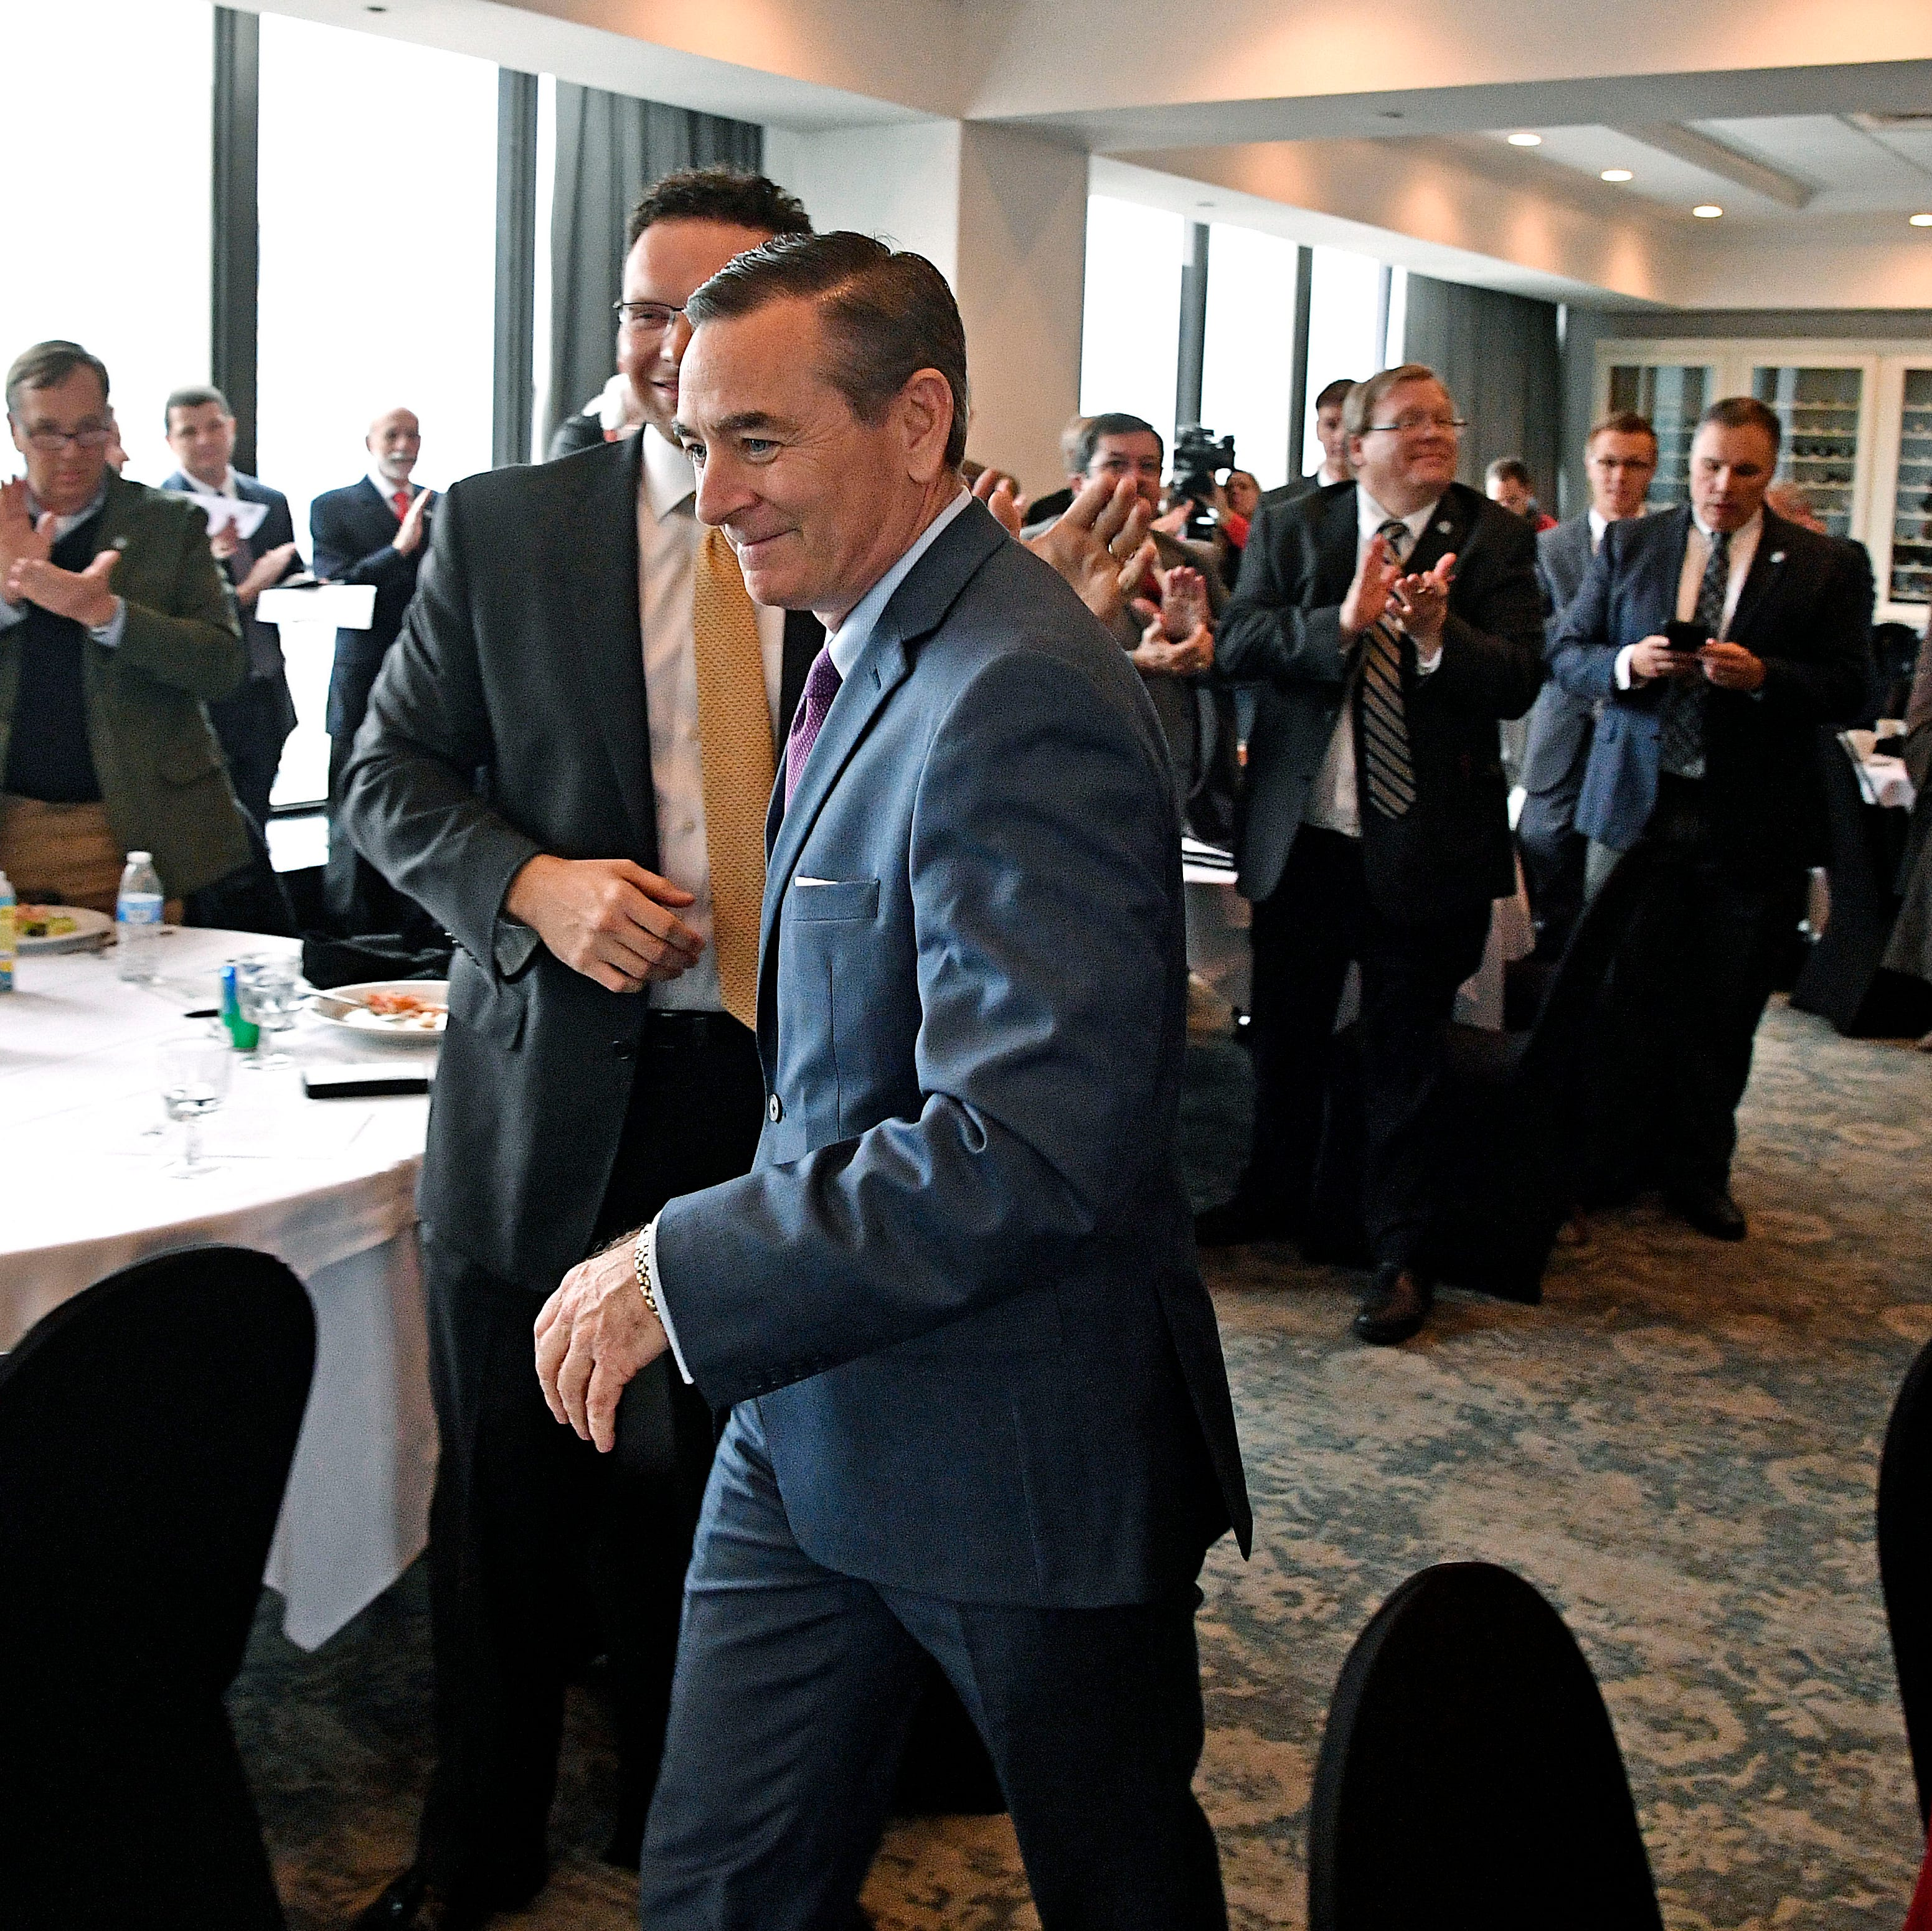 While gathering for the first time since the Nov. 6 midterm election, the chamber's 73 Republicans chose Franklin lawmaker Glen Casada to be their nominee for the chamber's next speaker.  